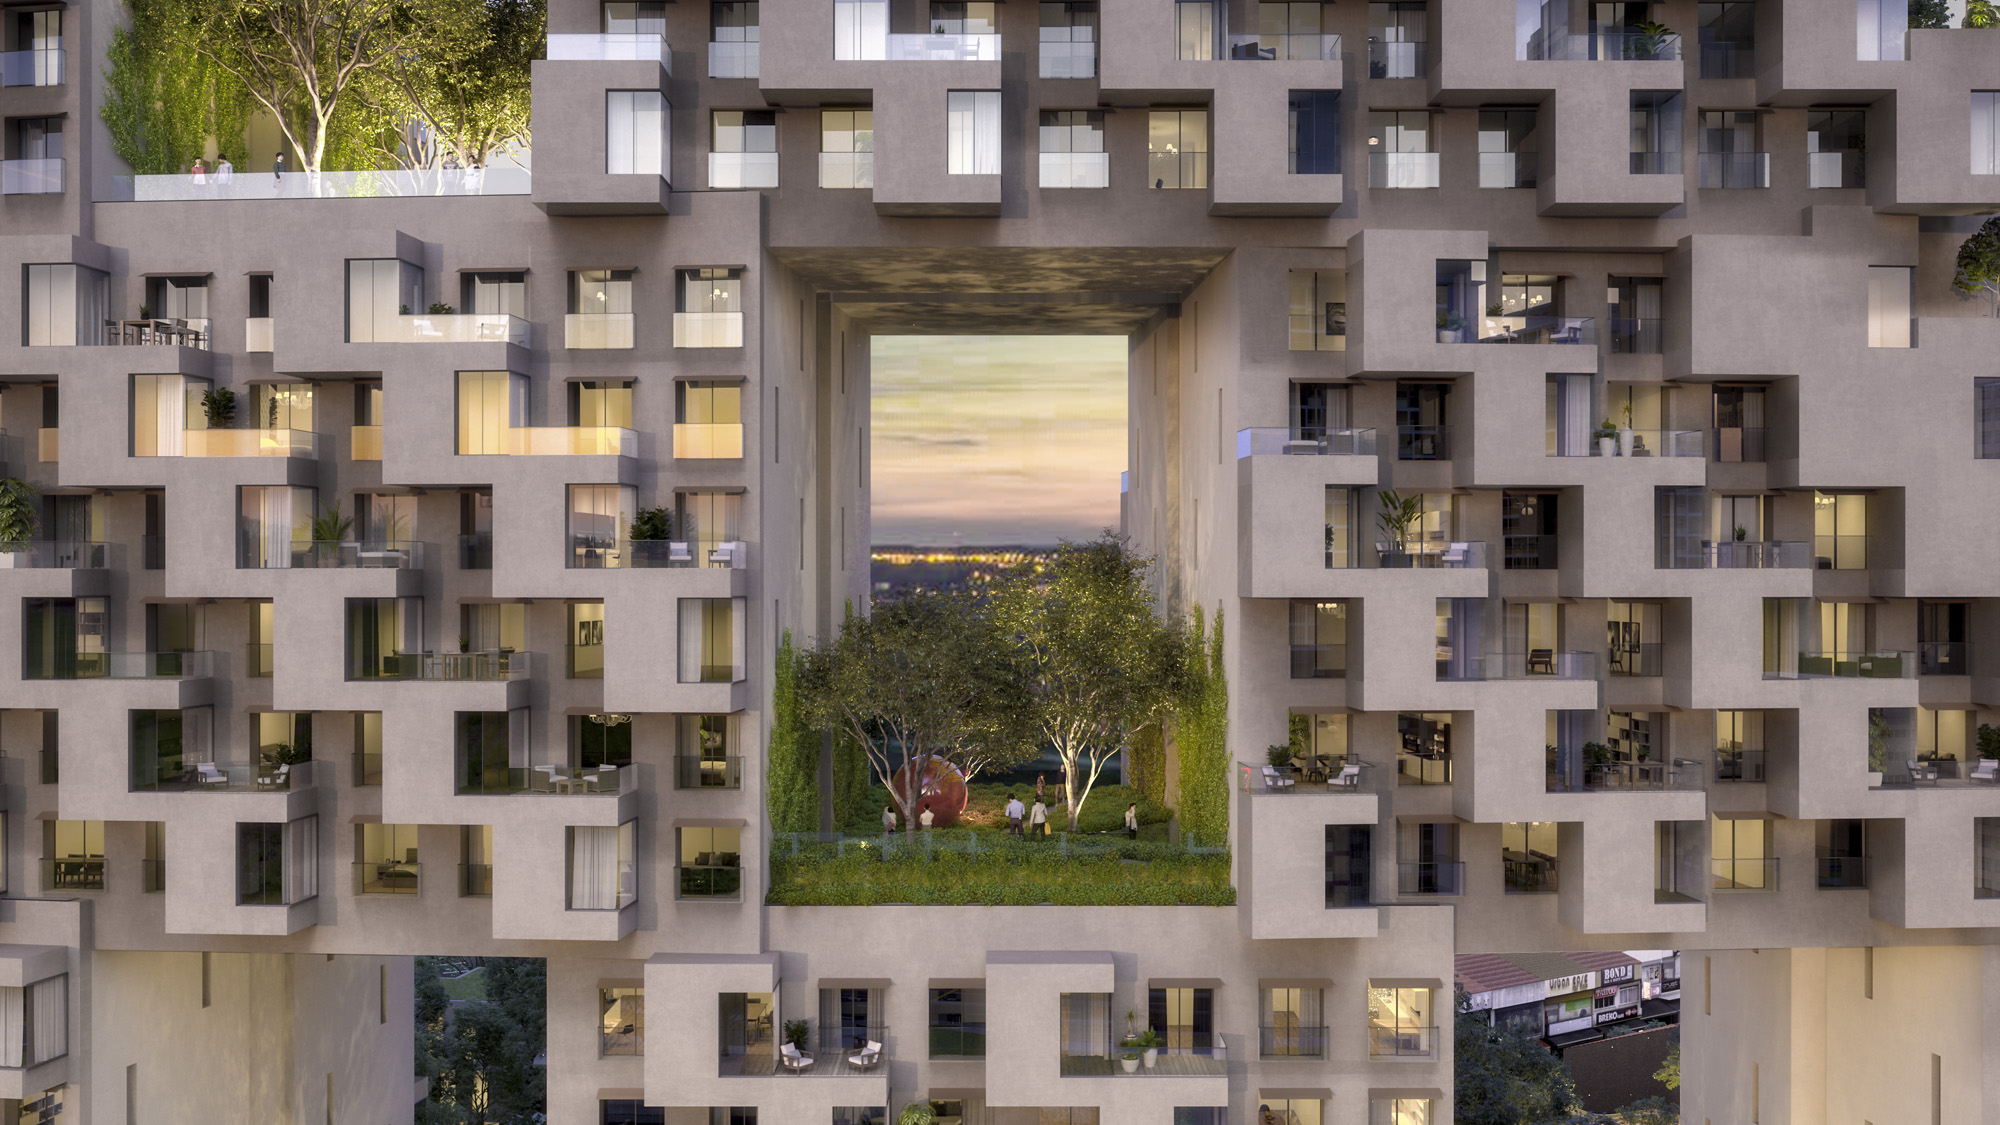 Architectural Design Of Residential Building Safdie Architects